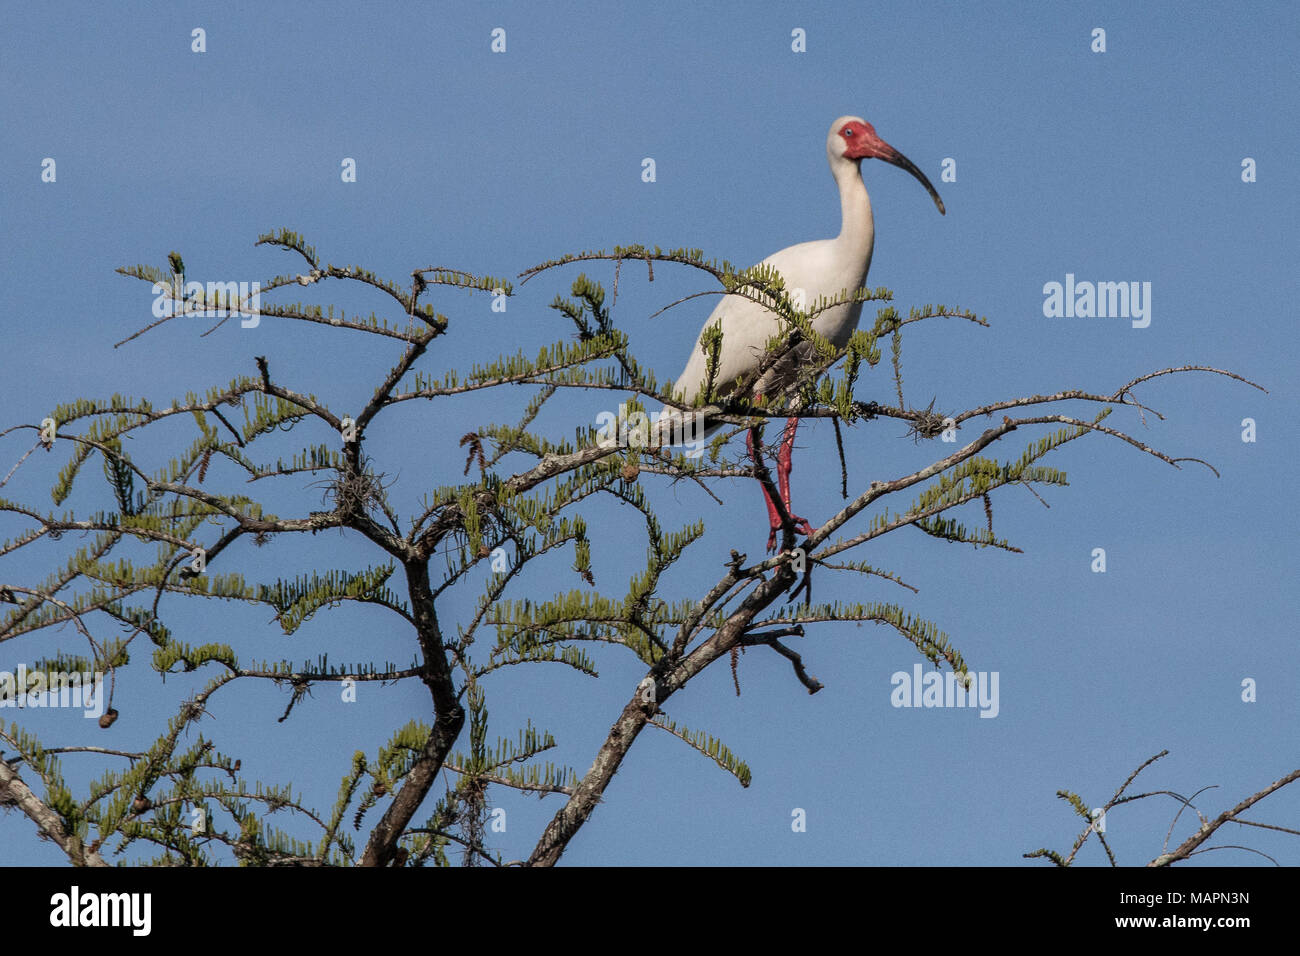 White ibis perched in poinciana tree - Stock Image